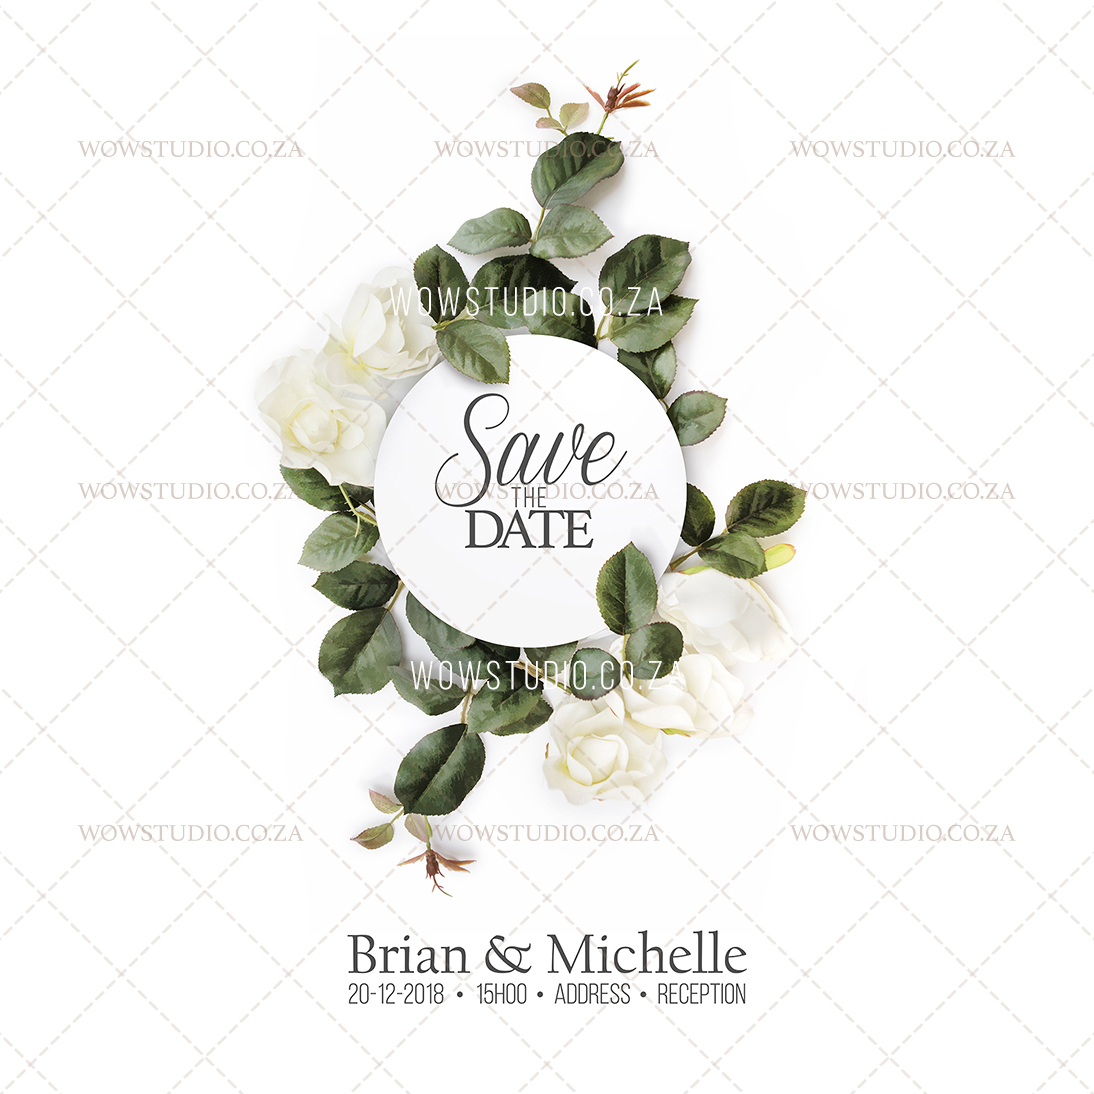 WOW Studio Save The Date Wedding Invitation Design